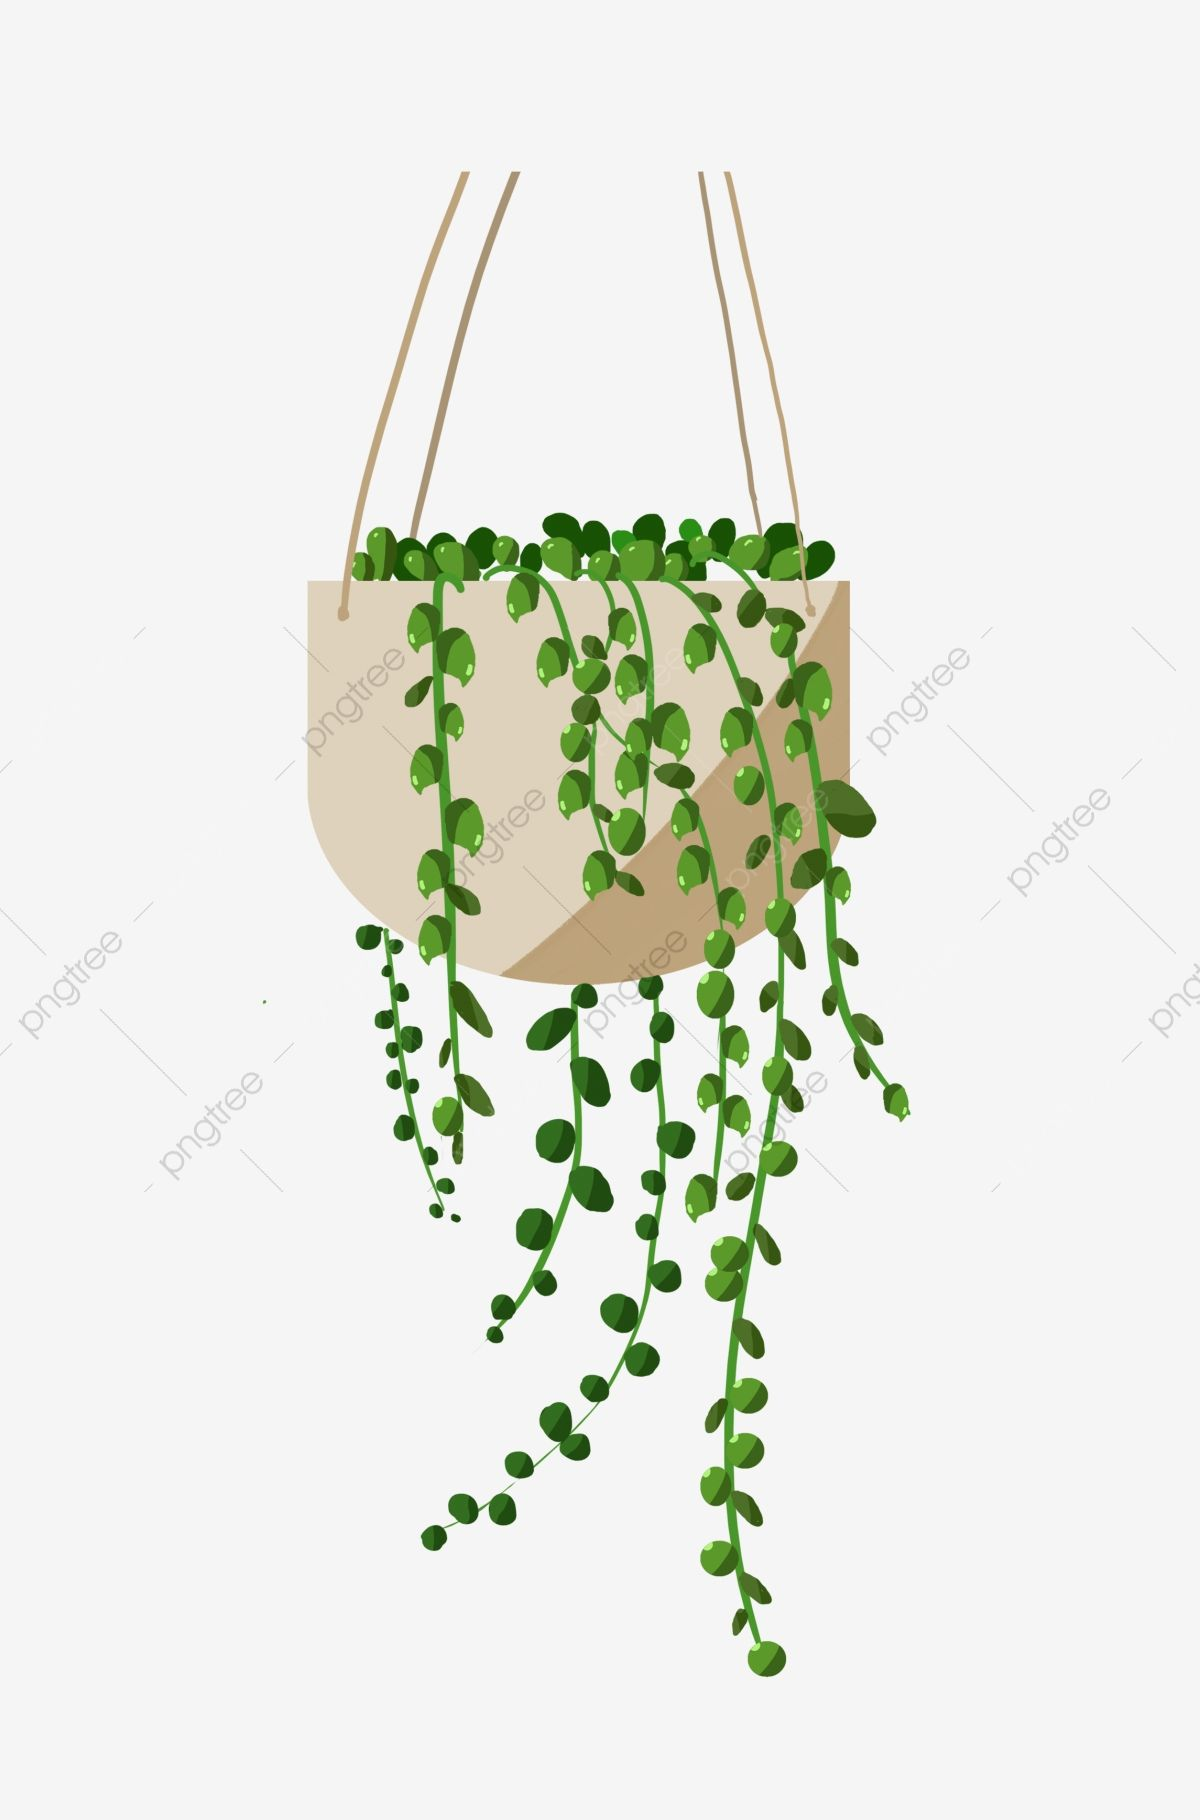 Download This Green Hanging Plant Flower Pot Small Green Leaves Cartoon Lover Tear Pot Potted Illustration Hanging Flower Pots White Flower Pot Flower Border